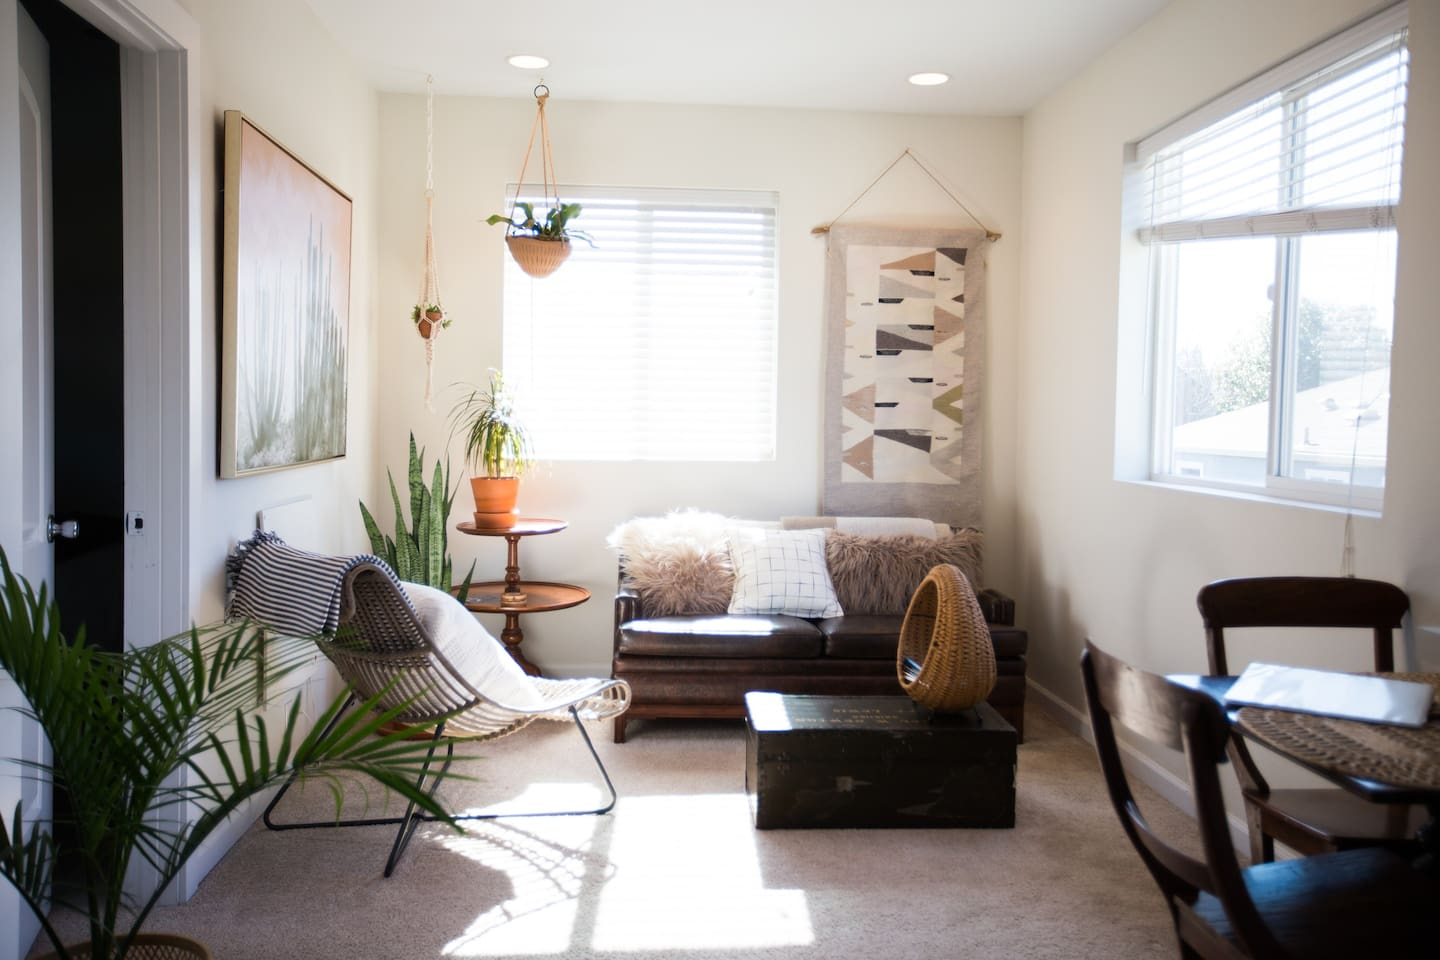 We've utilized every inch of this cozy, small space. The living room is comfy, bright, and has a mix of new & vintage finds.